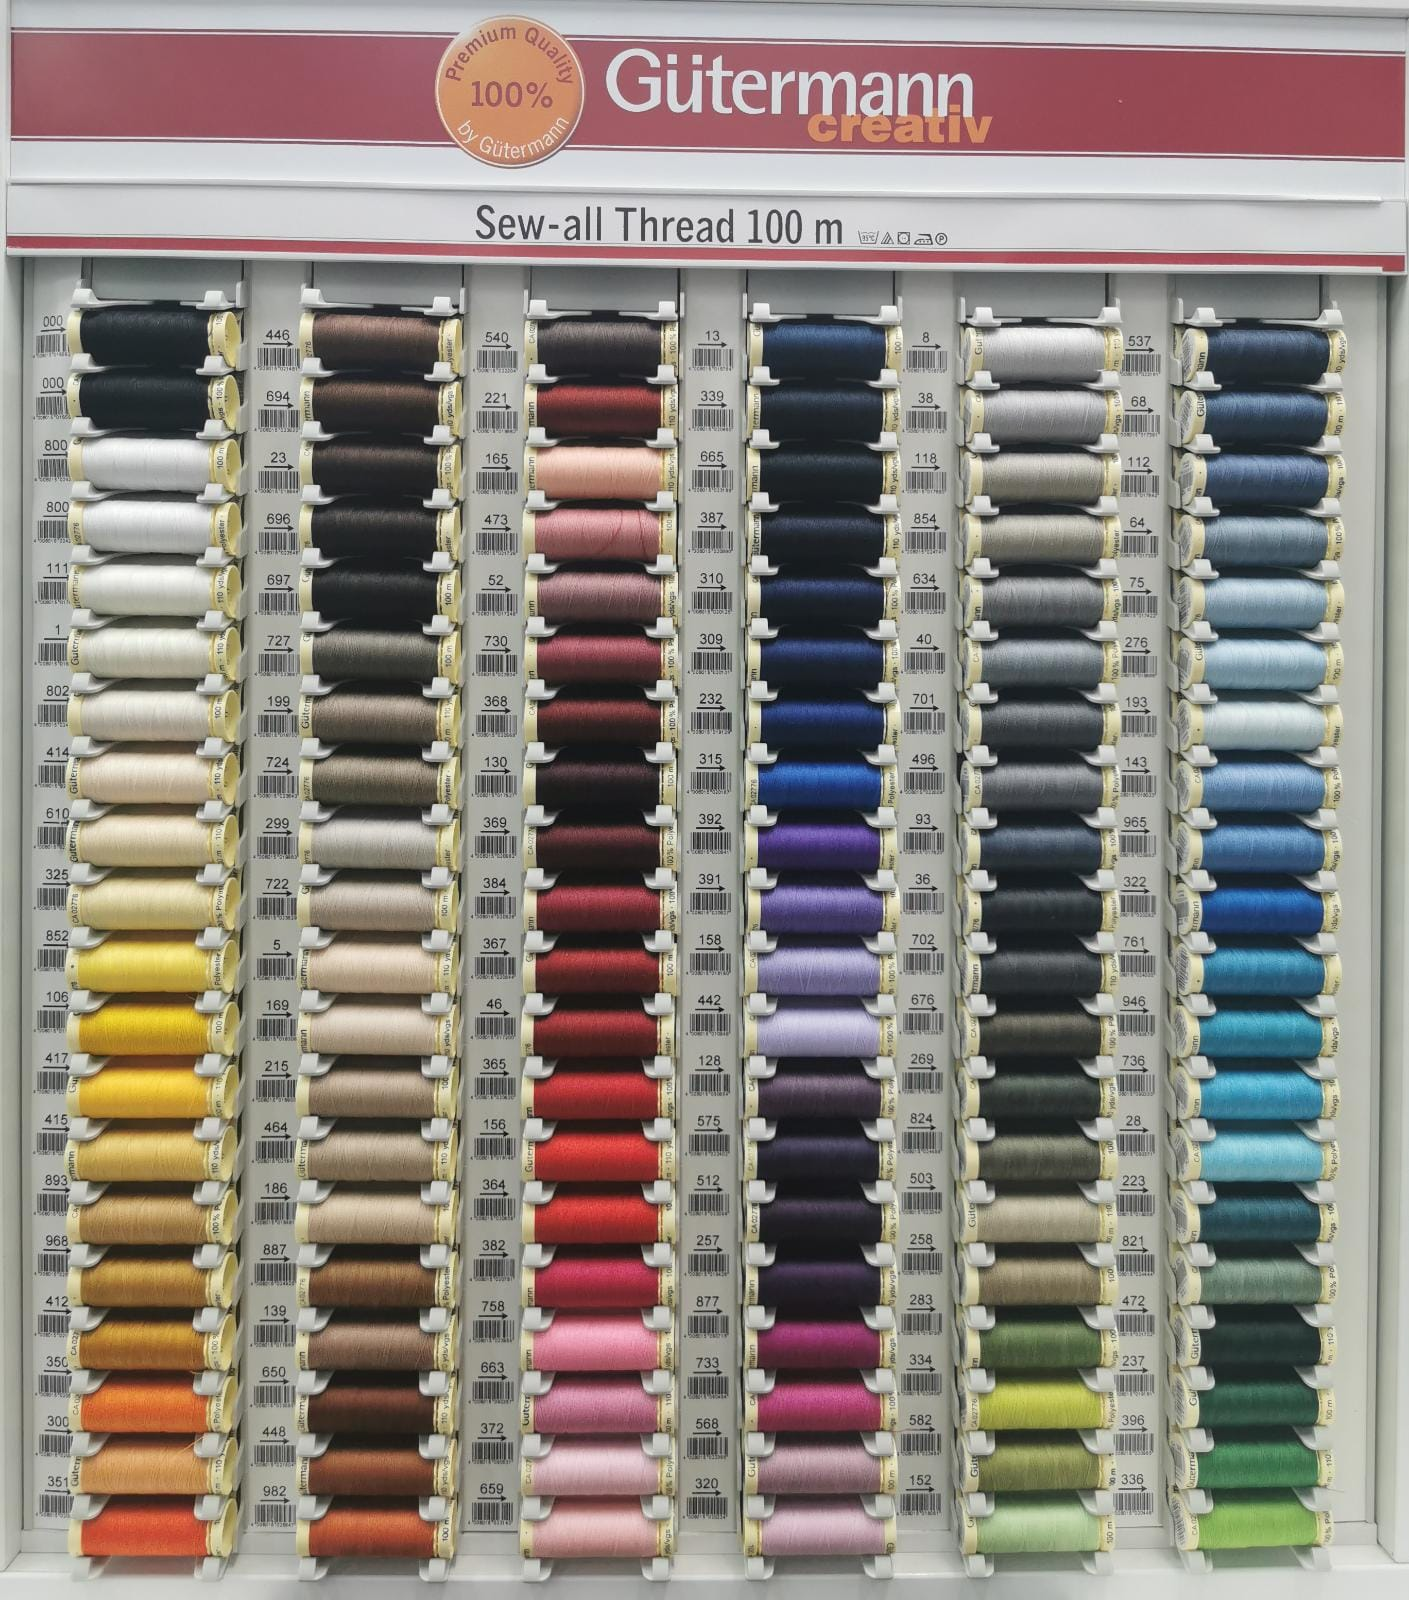 Gutermann Creativ Premium Quality 100% Sew - All Sewing Threads  at www.Sewing.sg